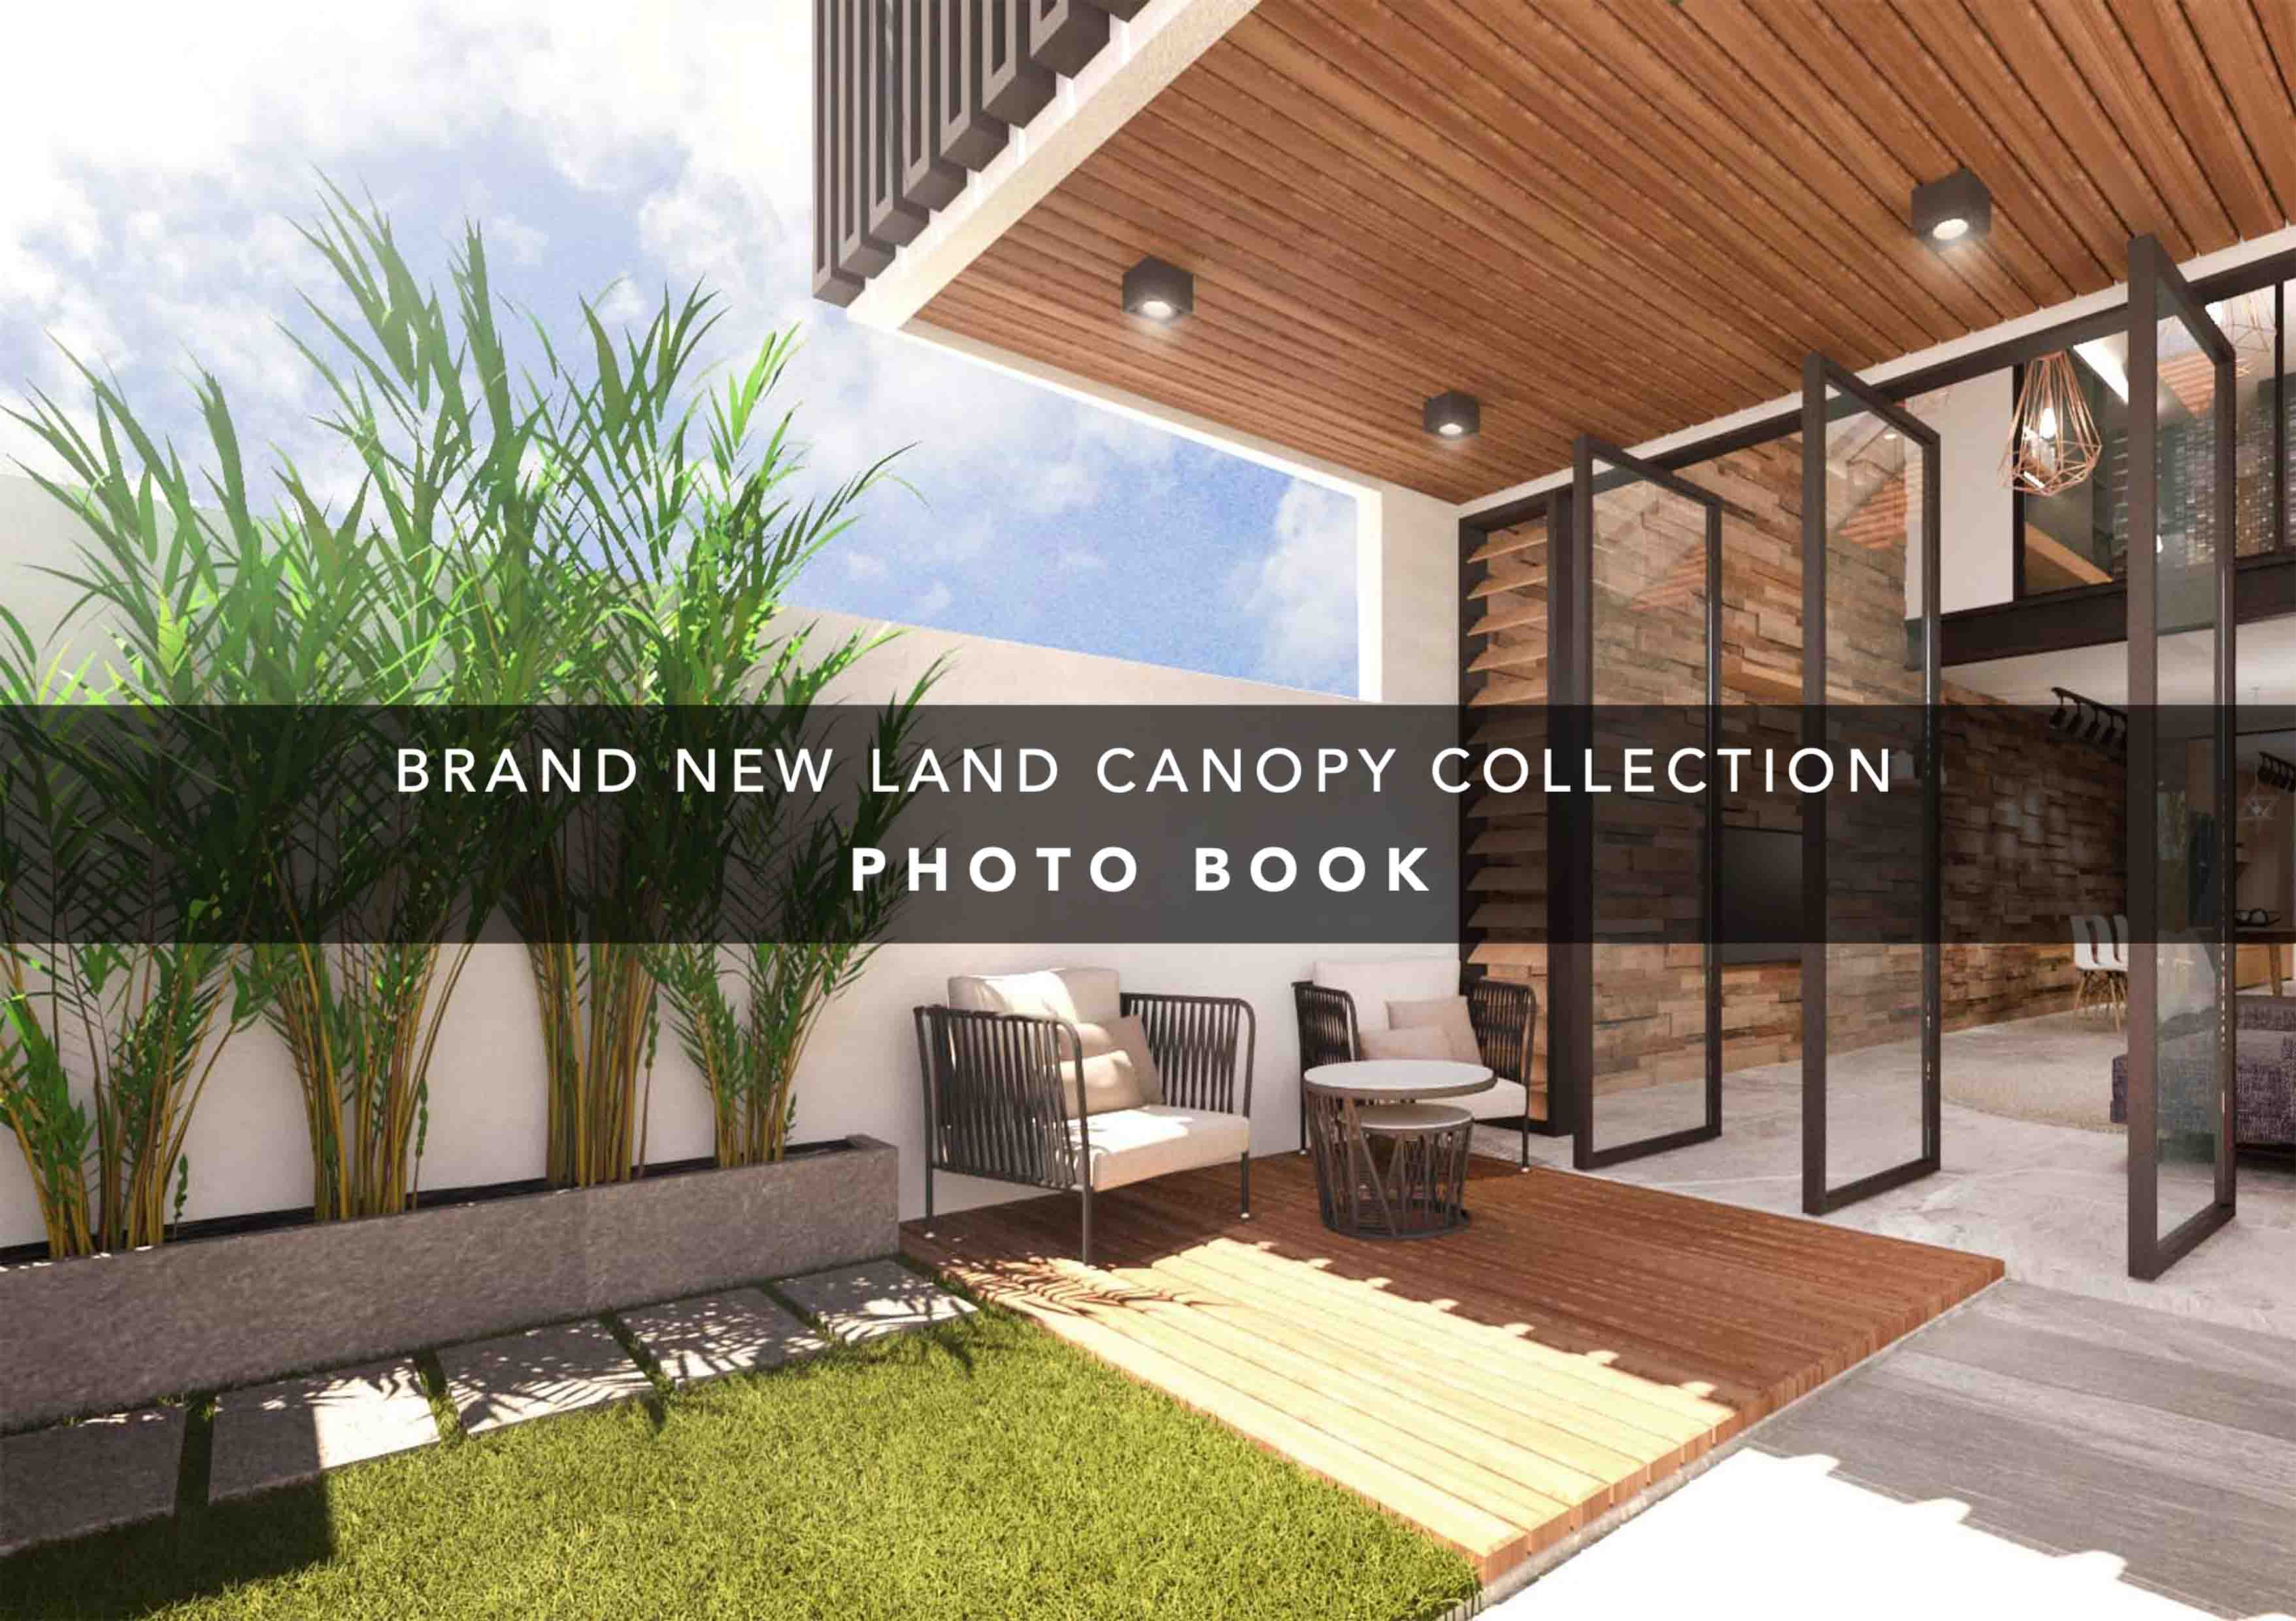 Canopy Collection